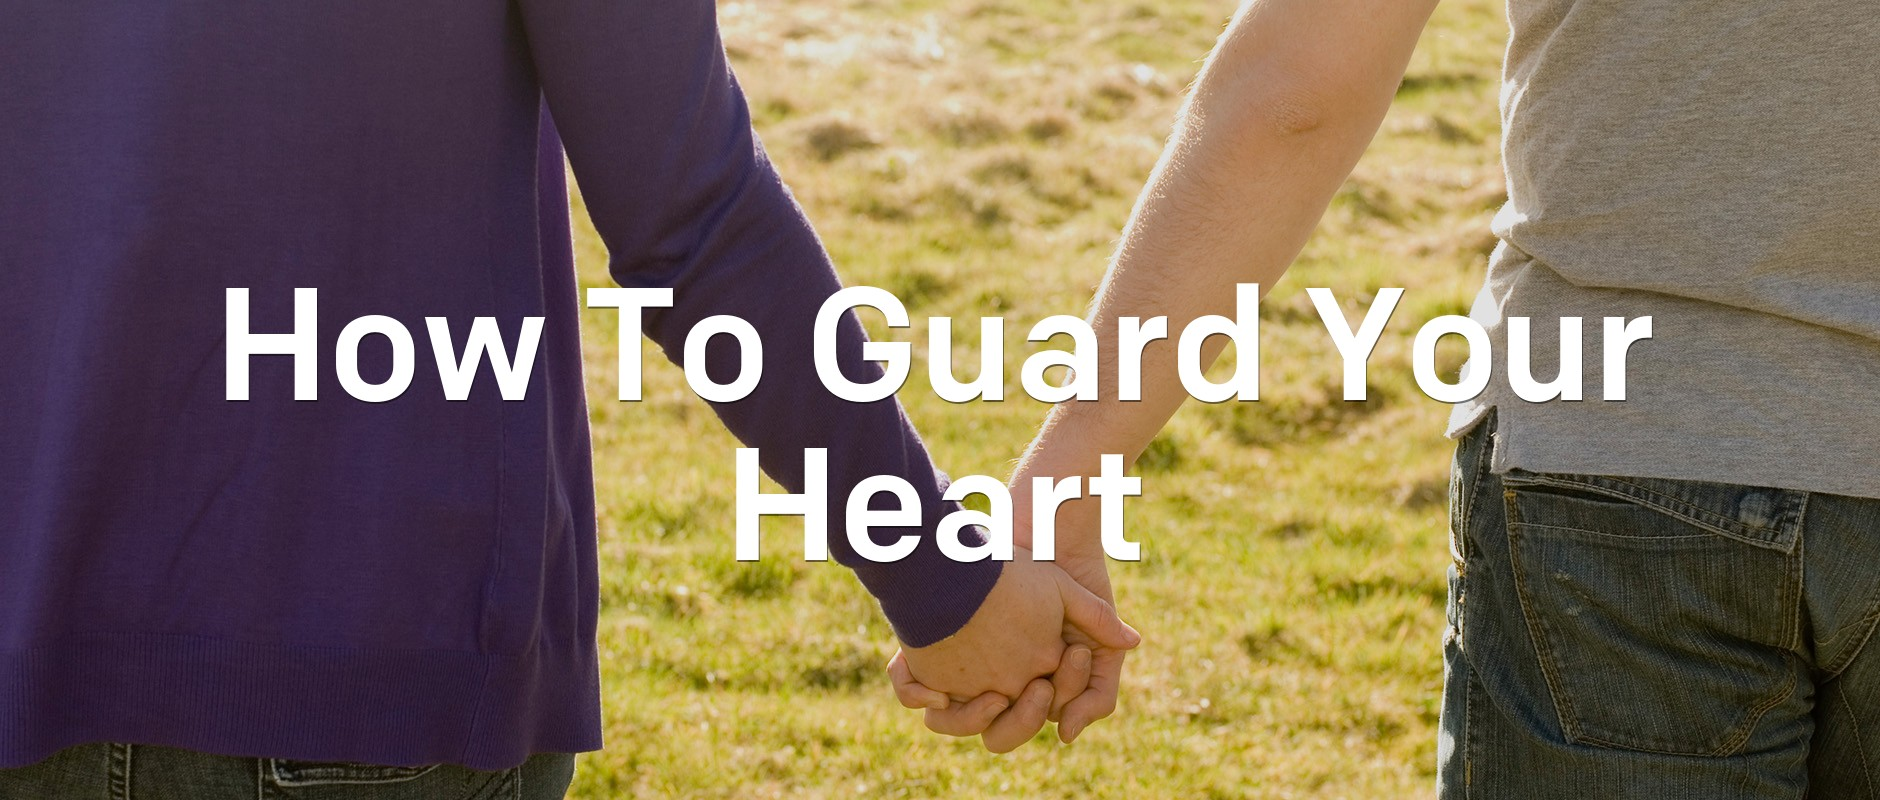 how to guard your heart while dating Your heart is your most important leadership toolmichael hyatt tweet quote when solomon says to guard your heart while their life expectancy has fallen.